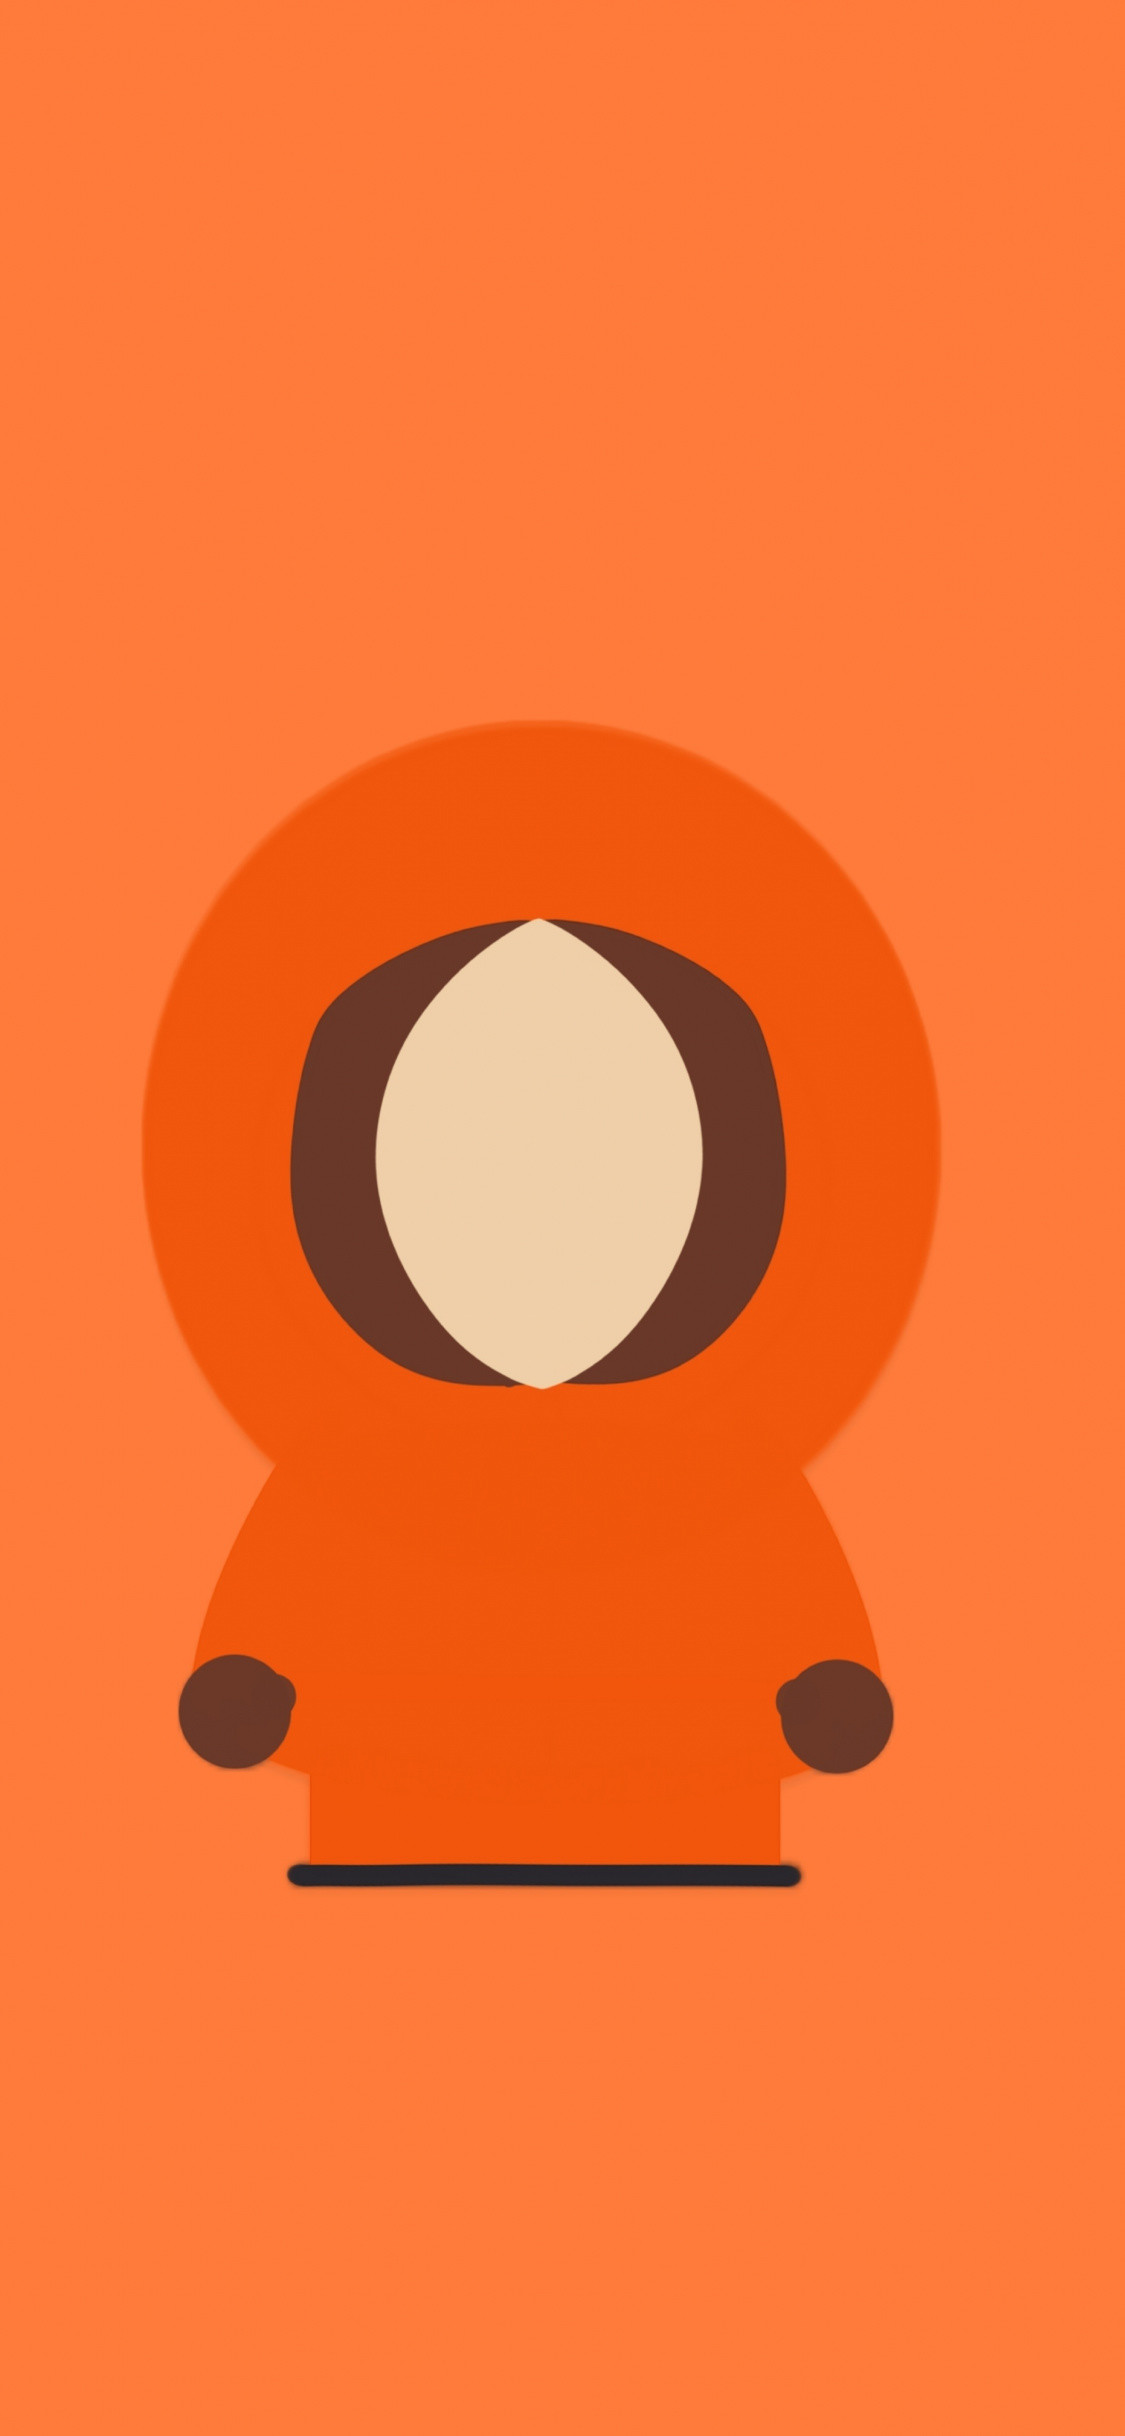 1125x2436 Kenny mccormick, south park, minimal, tv show,  wallpaper